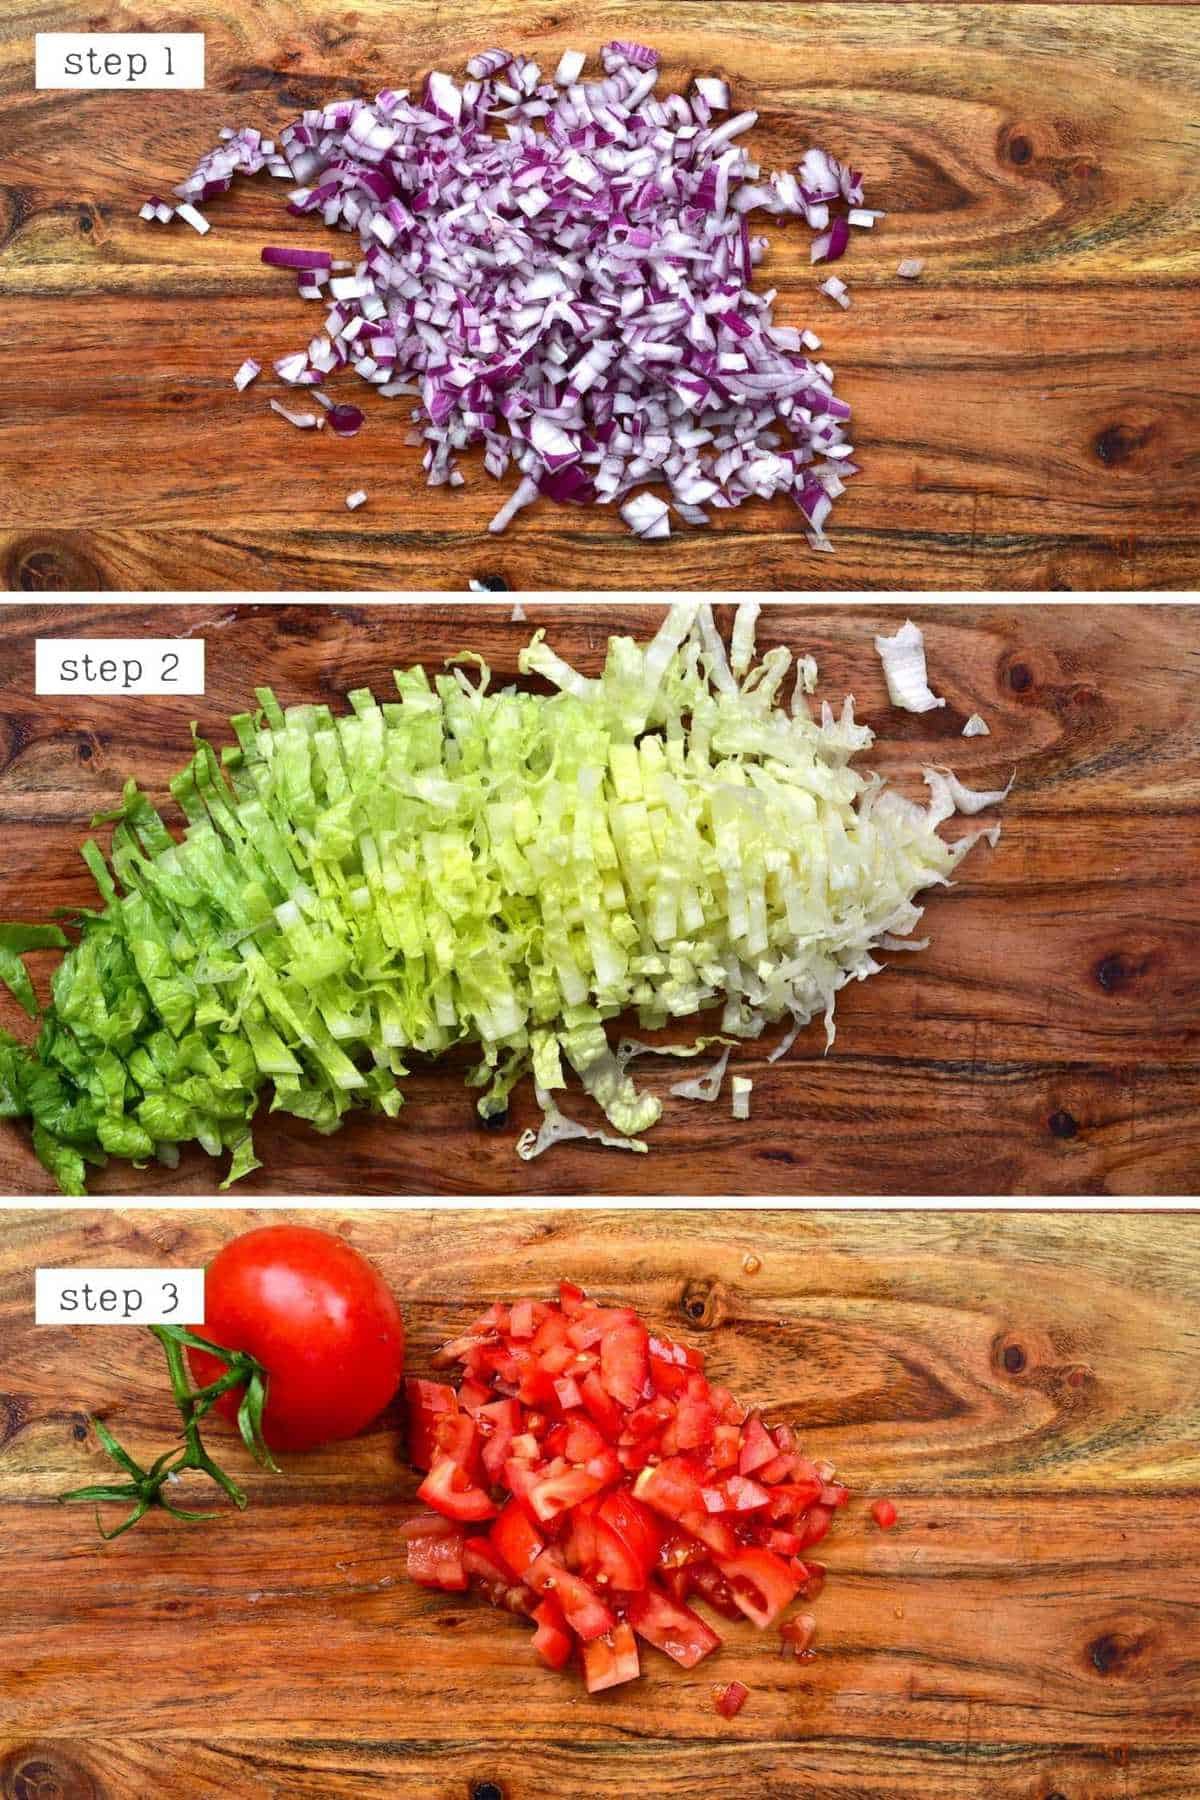 Steps for chopping veggies